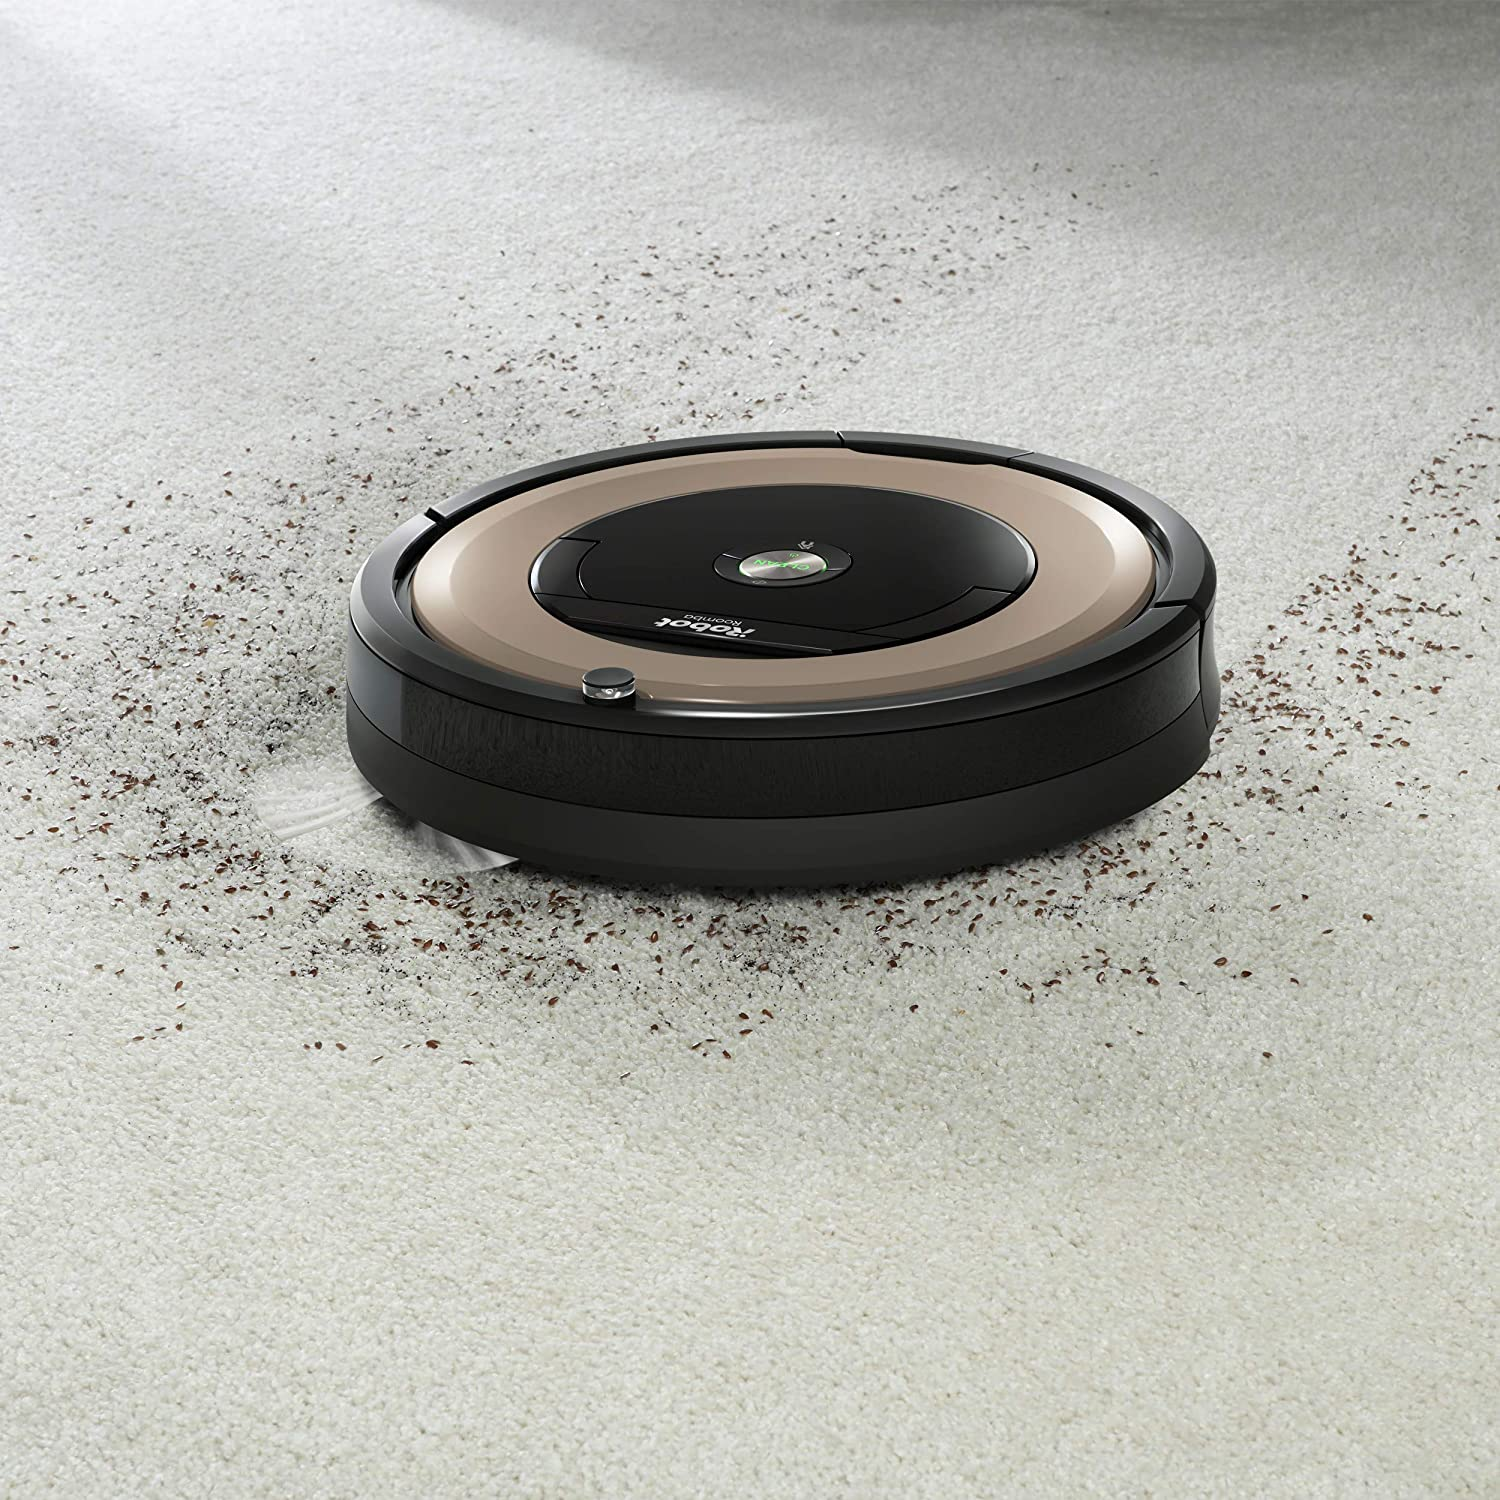 irobot roomba 891 review